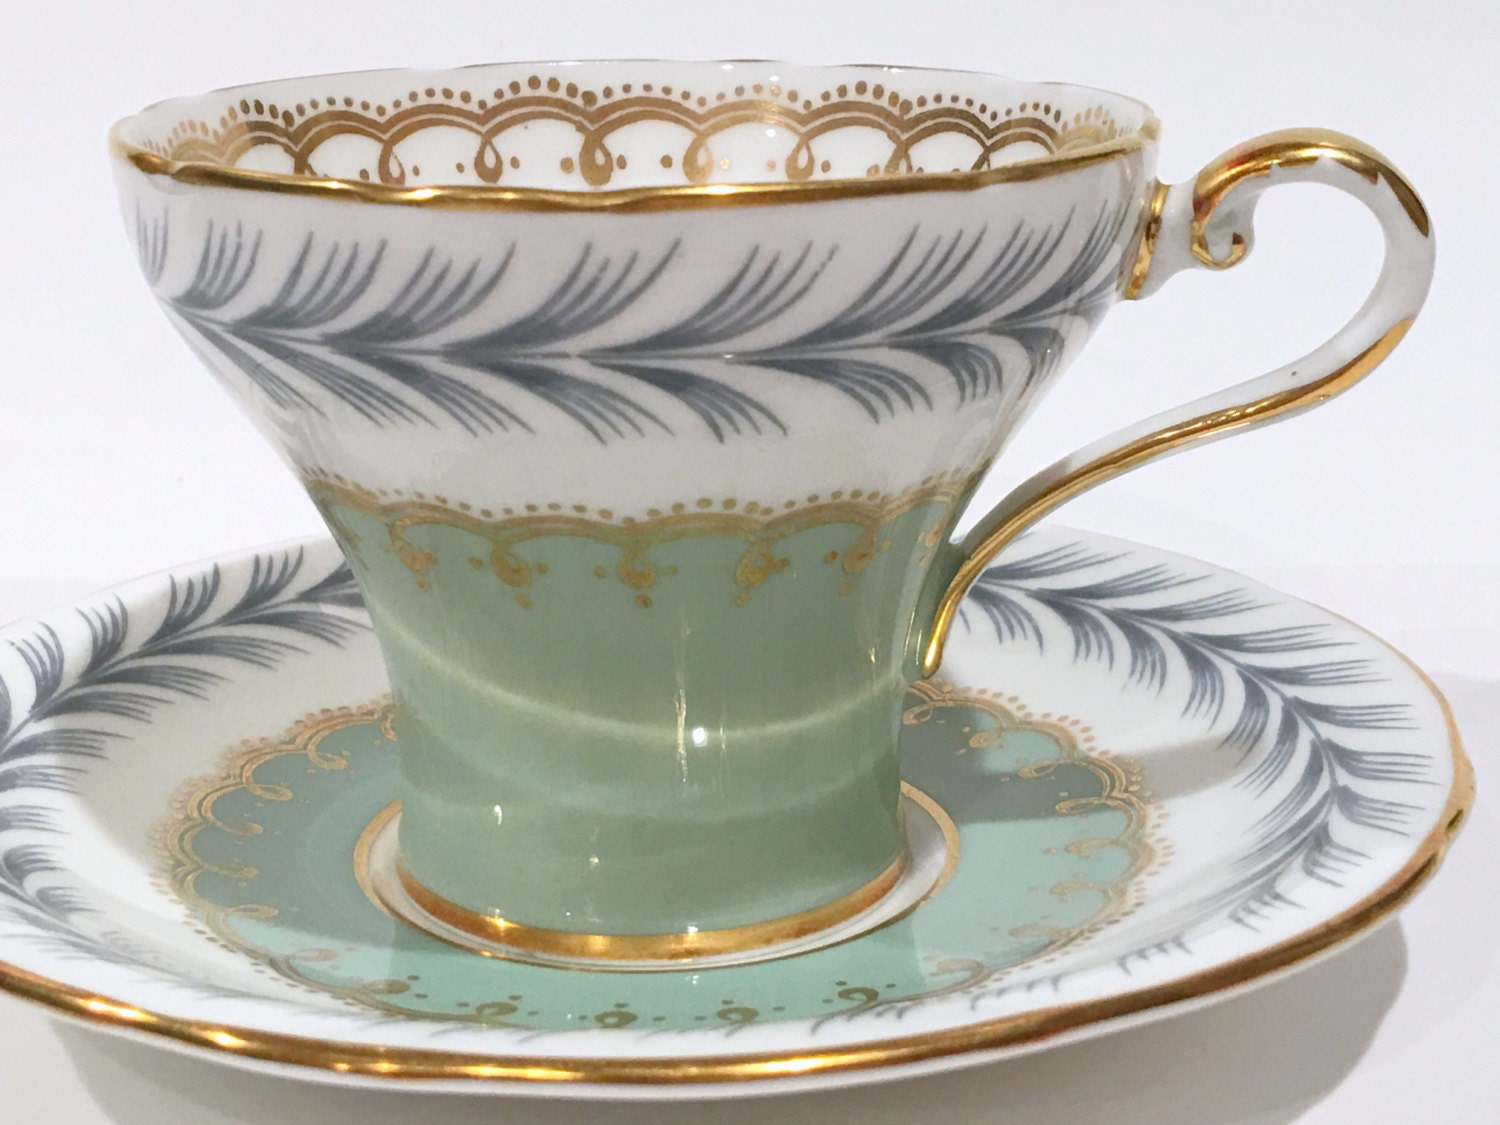 antique aynsley tea cup and saucer english bone china. Black Bedroom Furniture Sets. Home Design Ideas